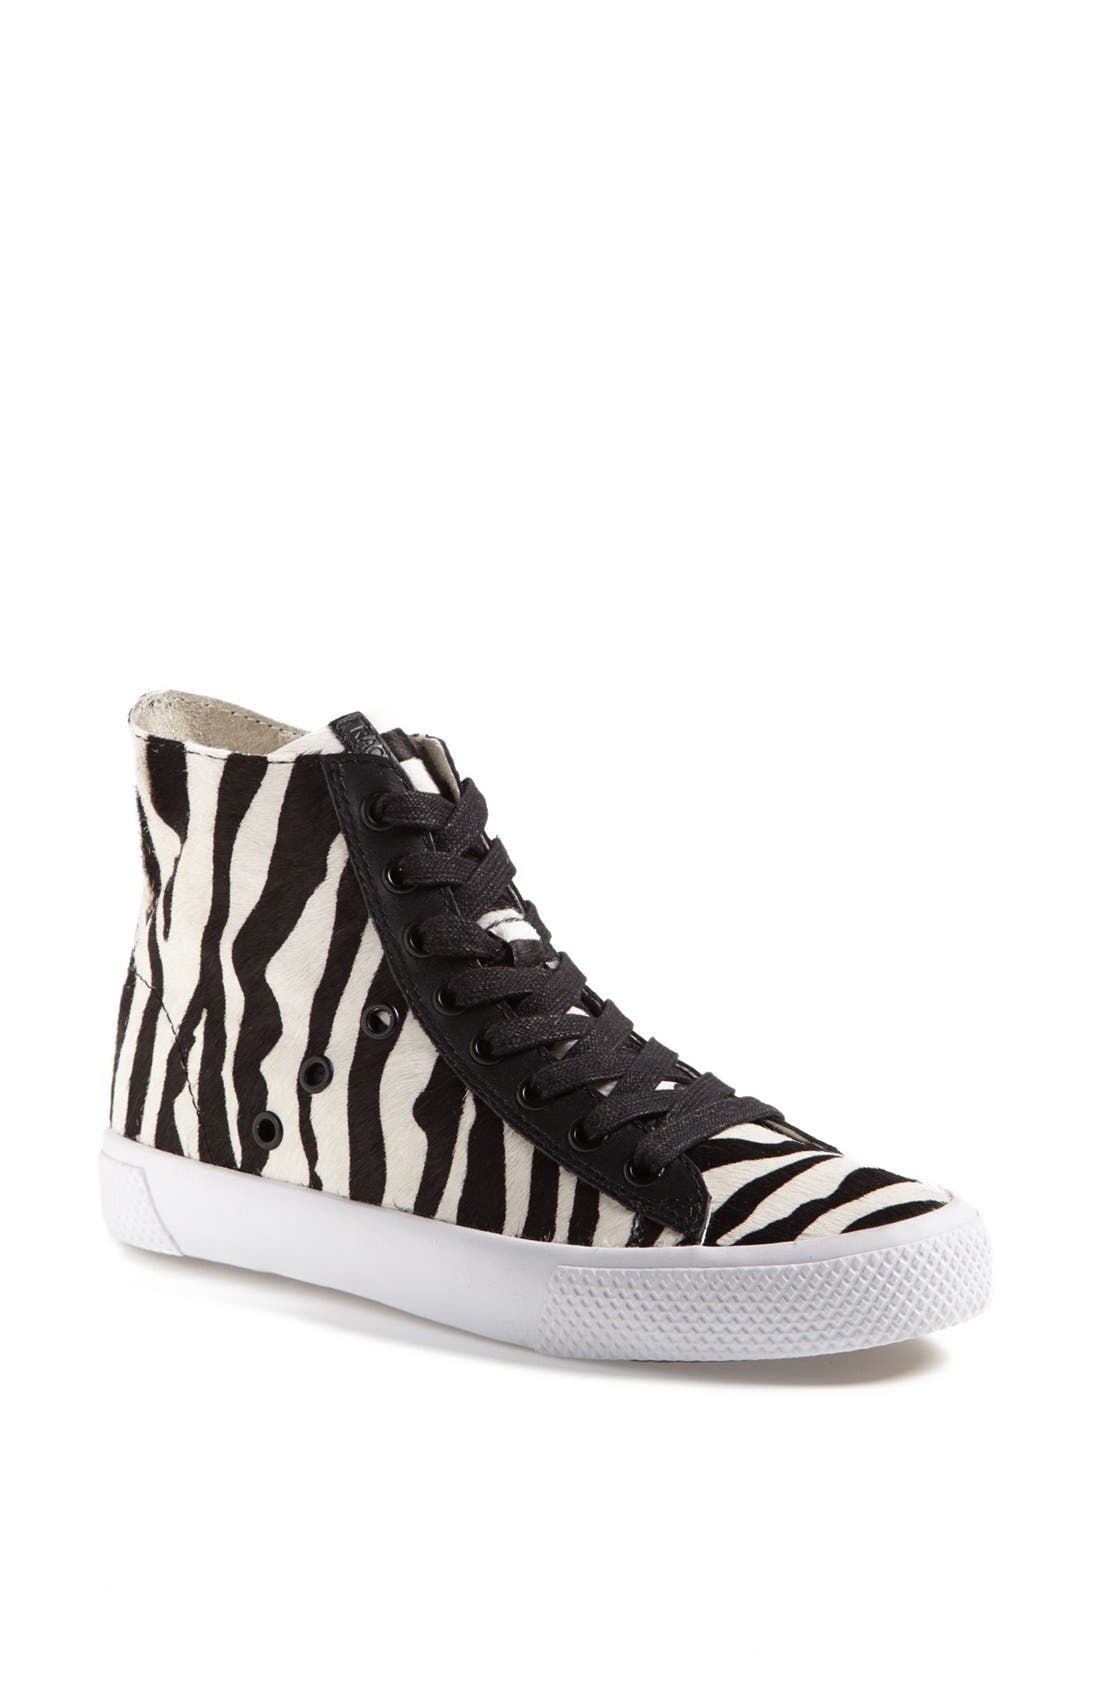 Alternate Image 1 Selected - Rachel Zoe 'Barret' Zebra Print Calf Hair Sneaker (Online Only)